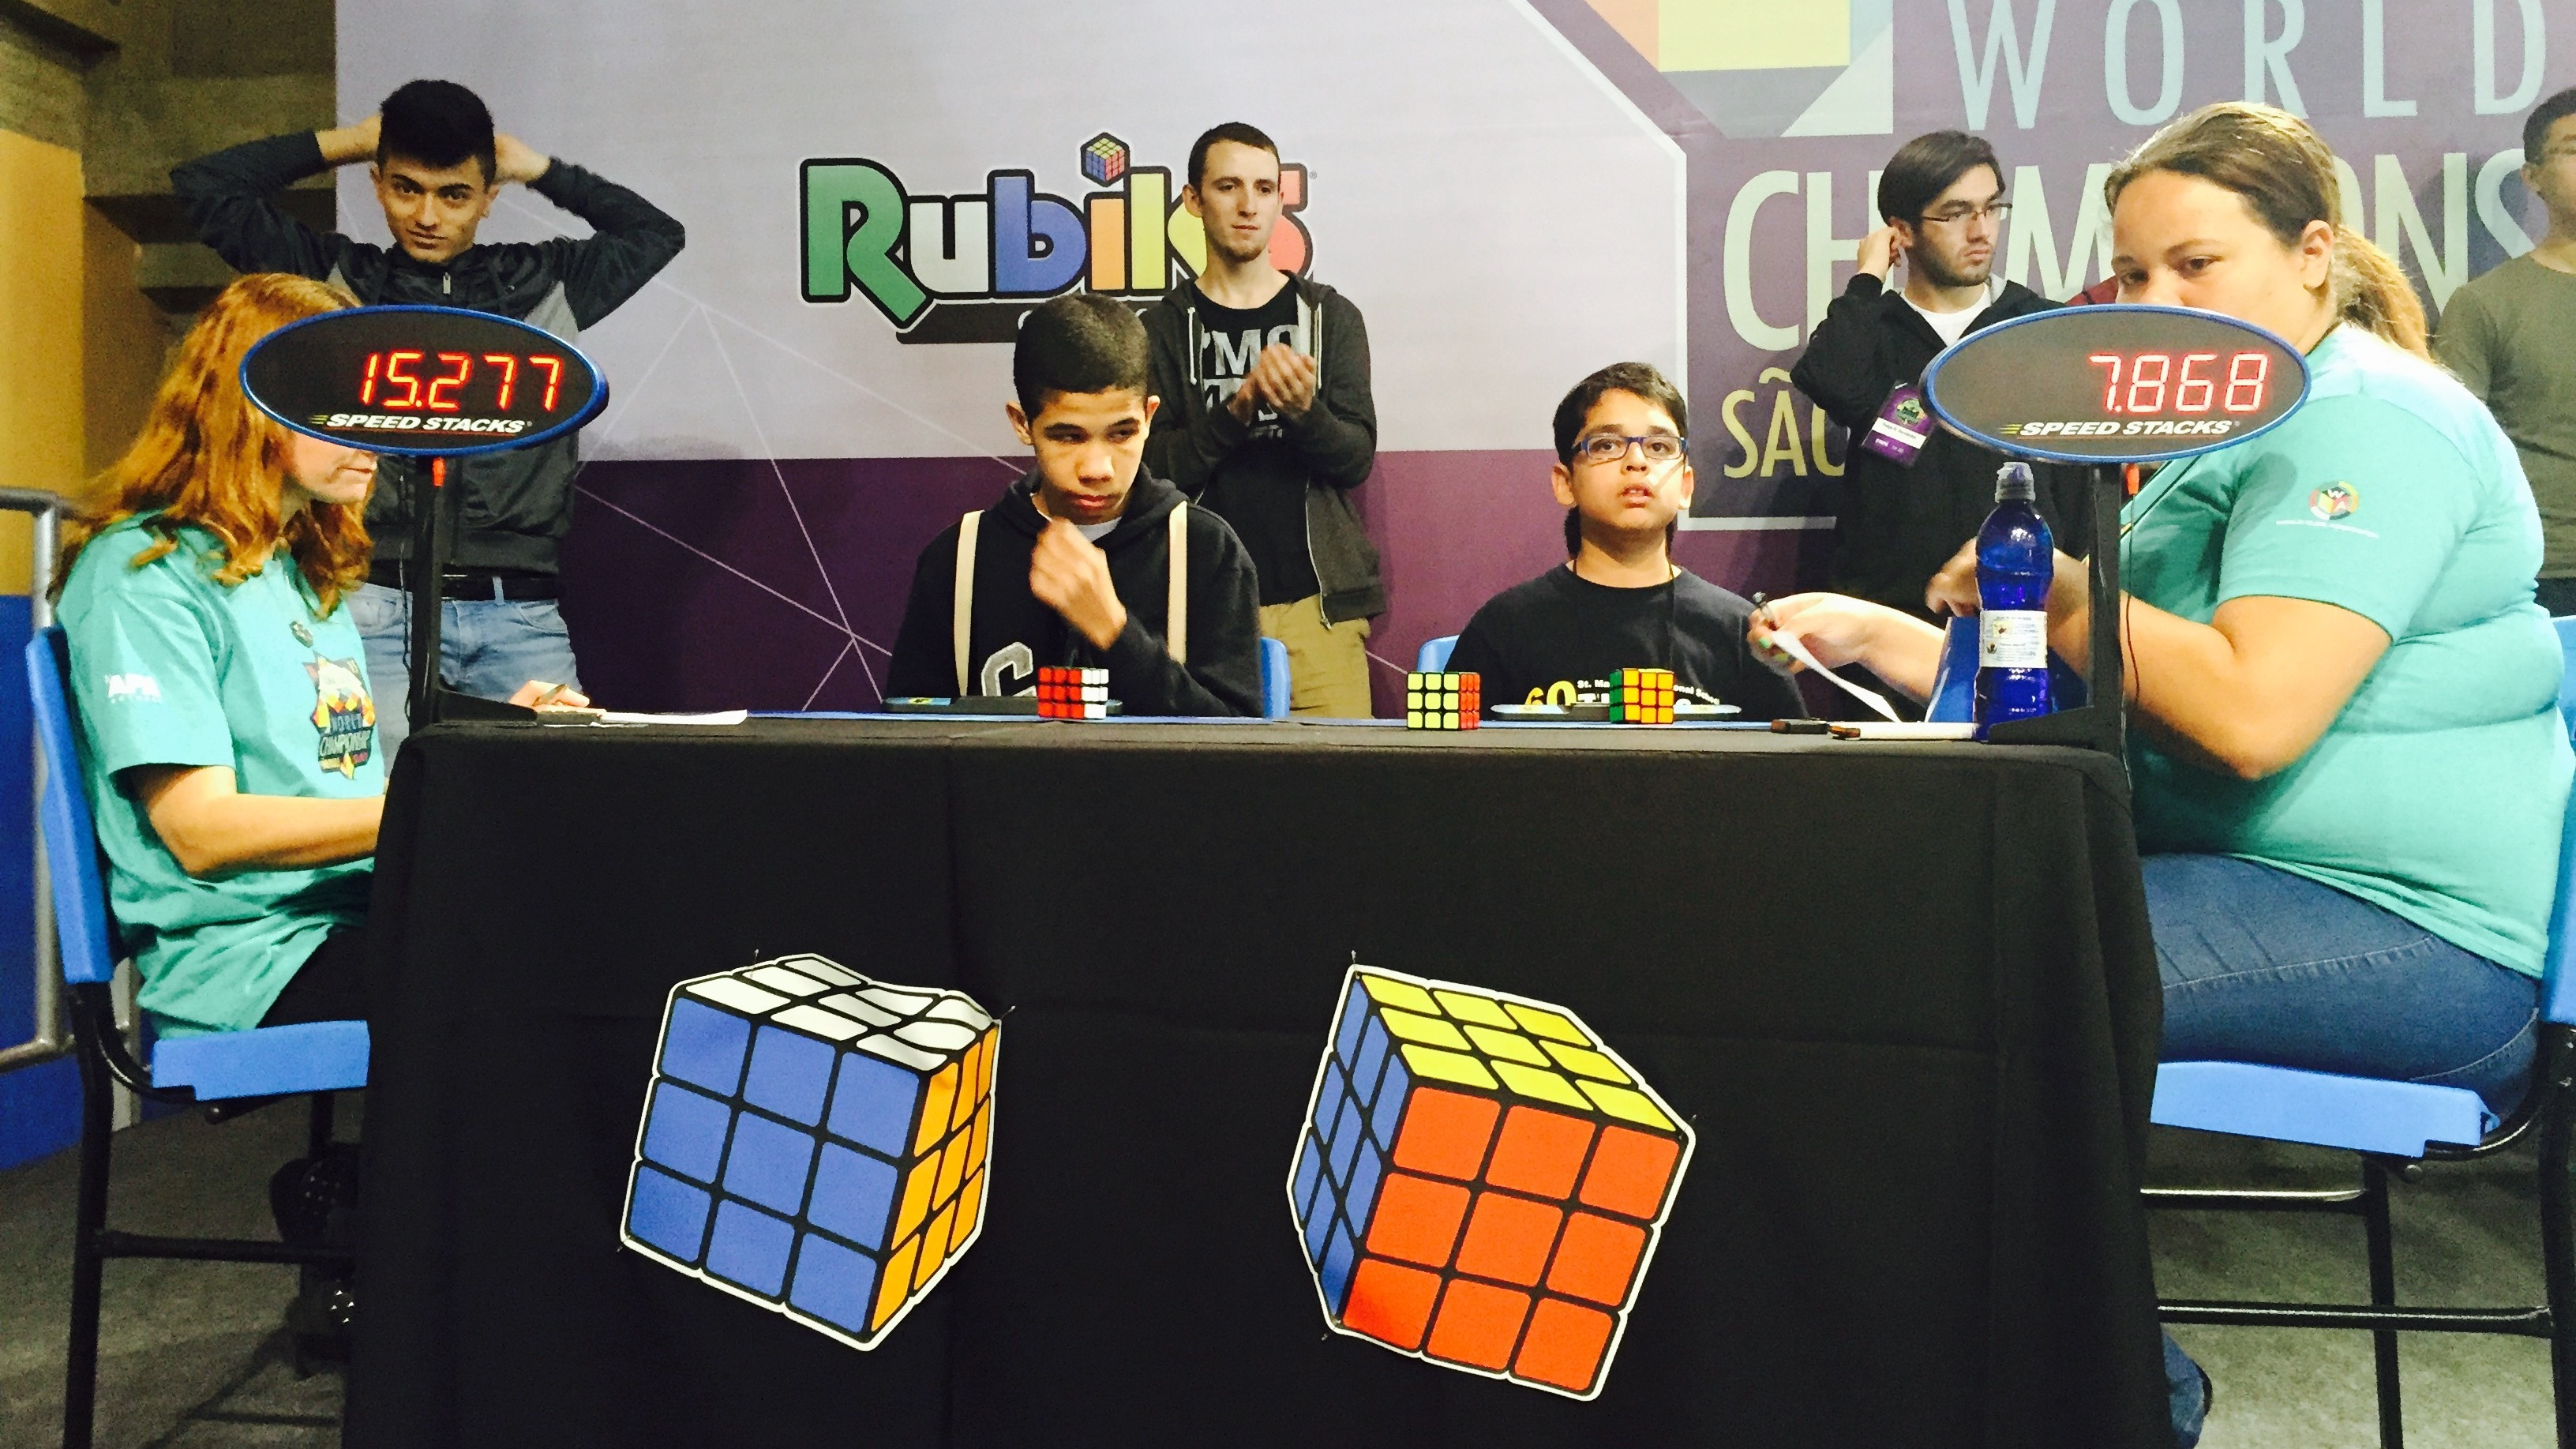 For The Rubik's Cube World Champ, 6 Seconds Is Plenty Of Time